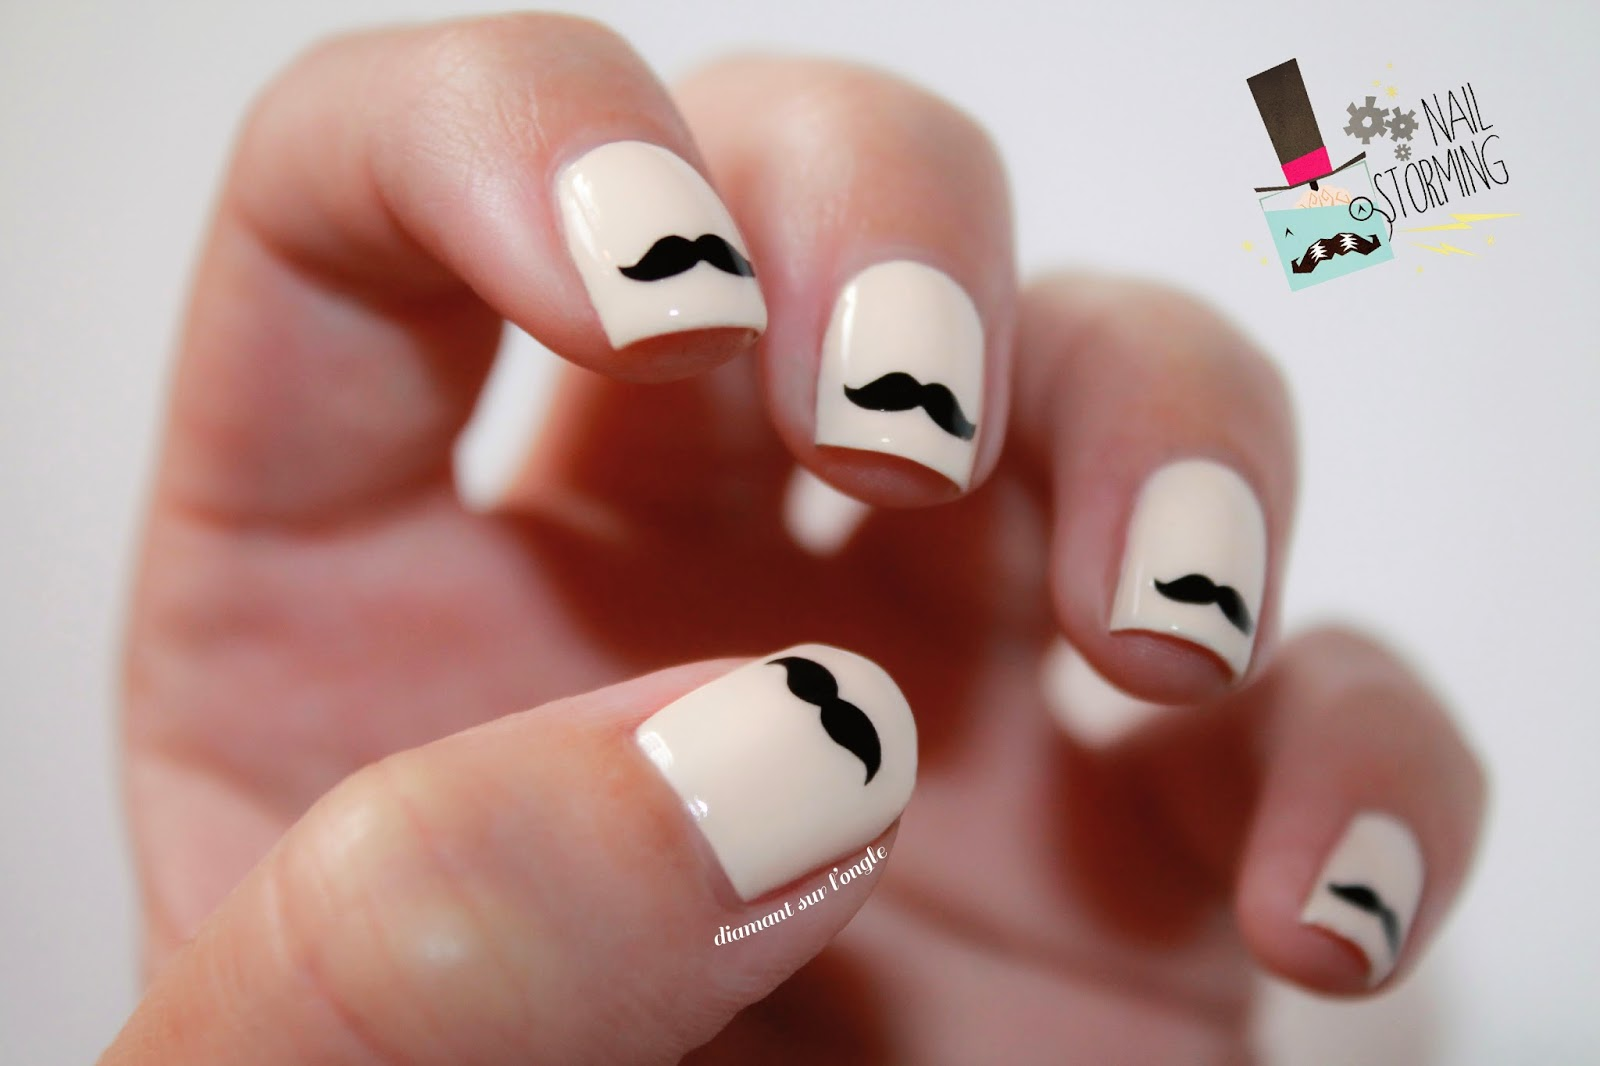 http://diamantsurlongle.blogspot.fr/2013/11/movember-nailstoming-moustache.html